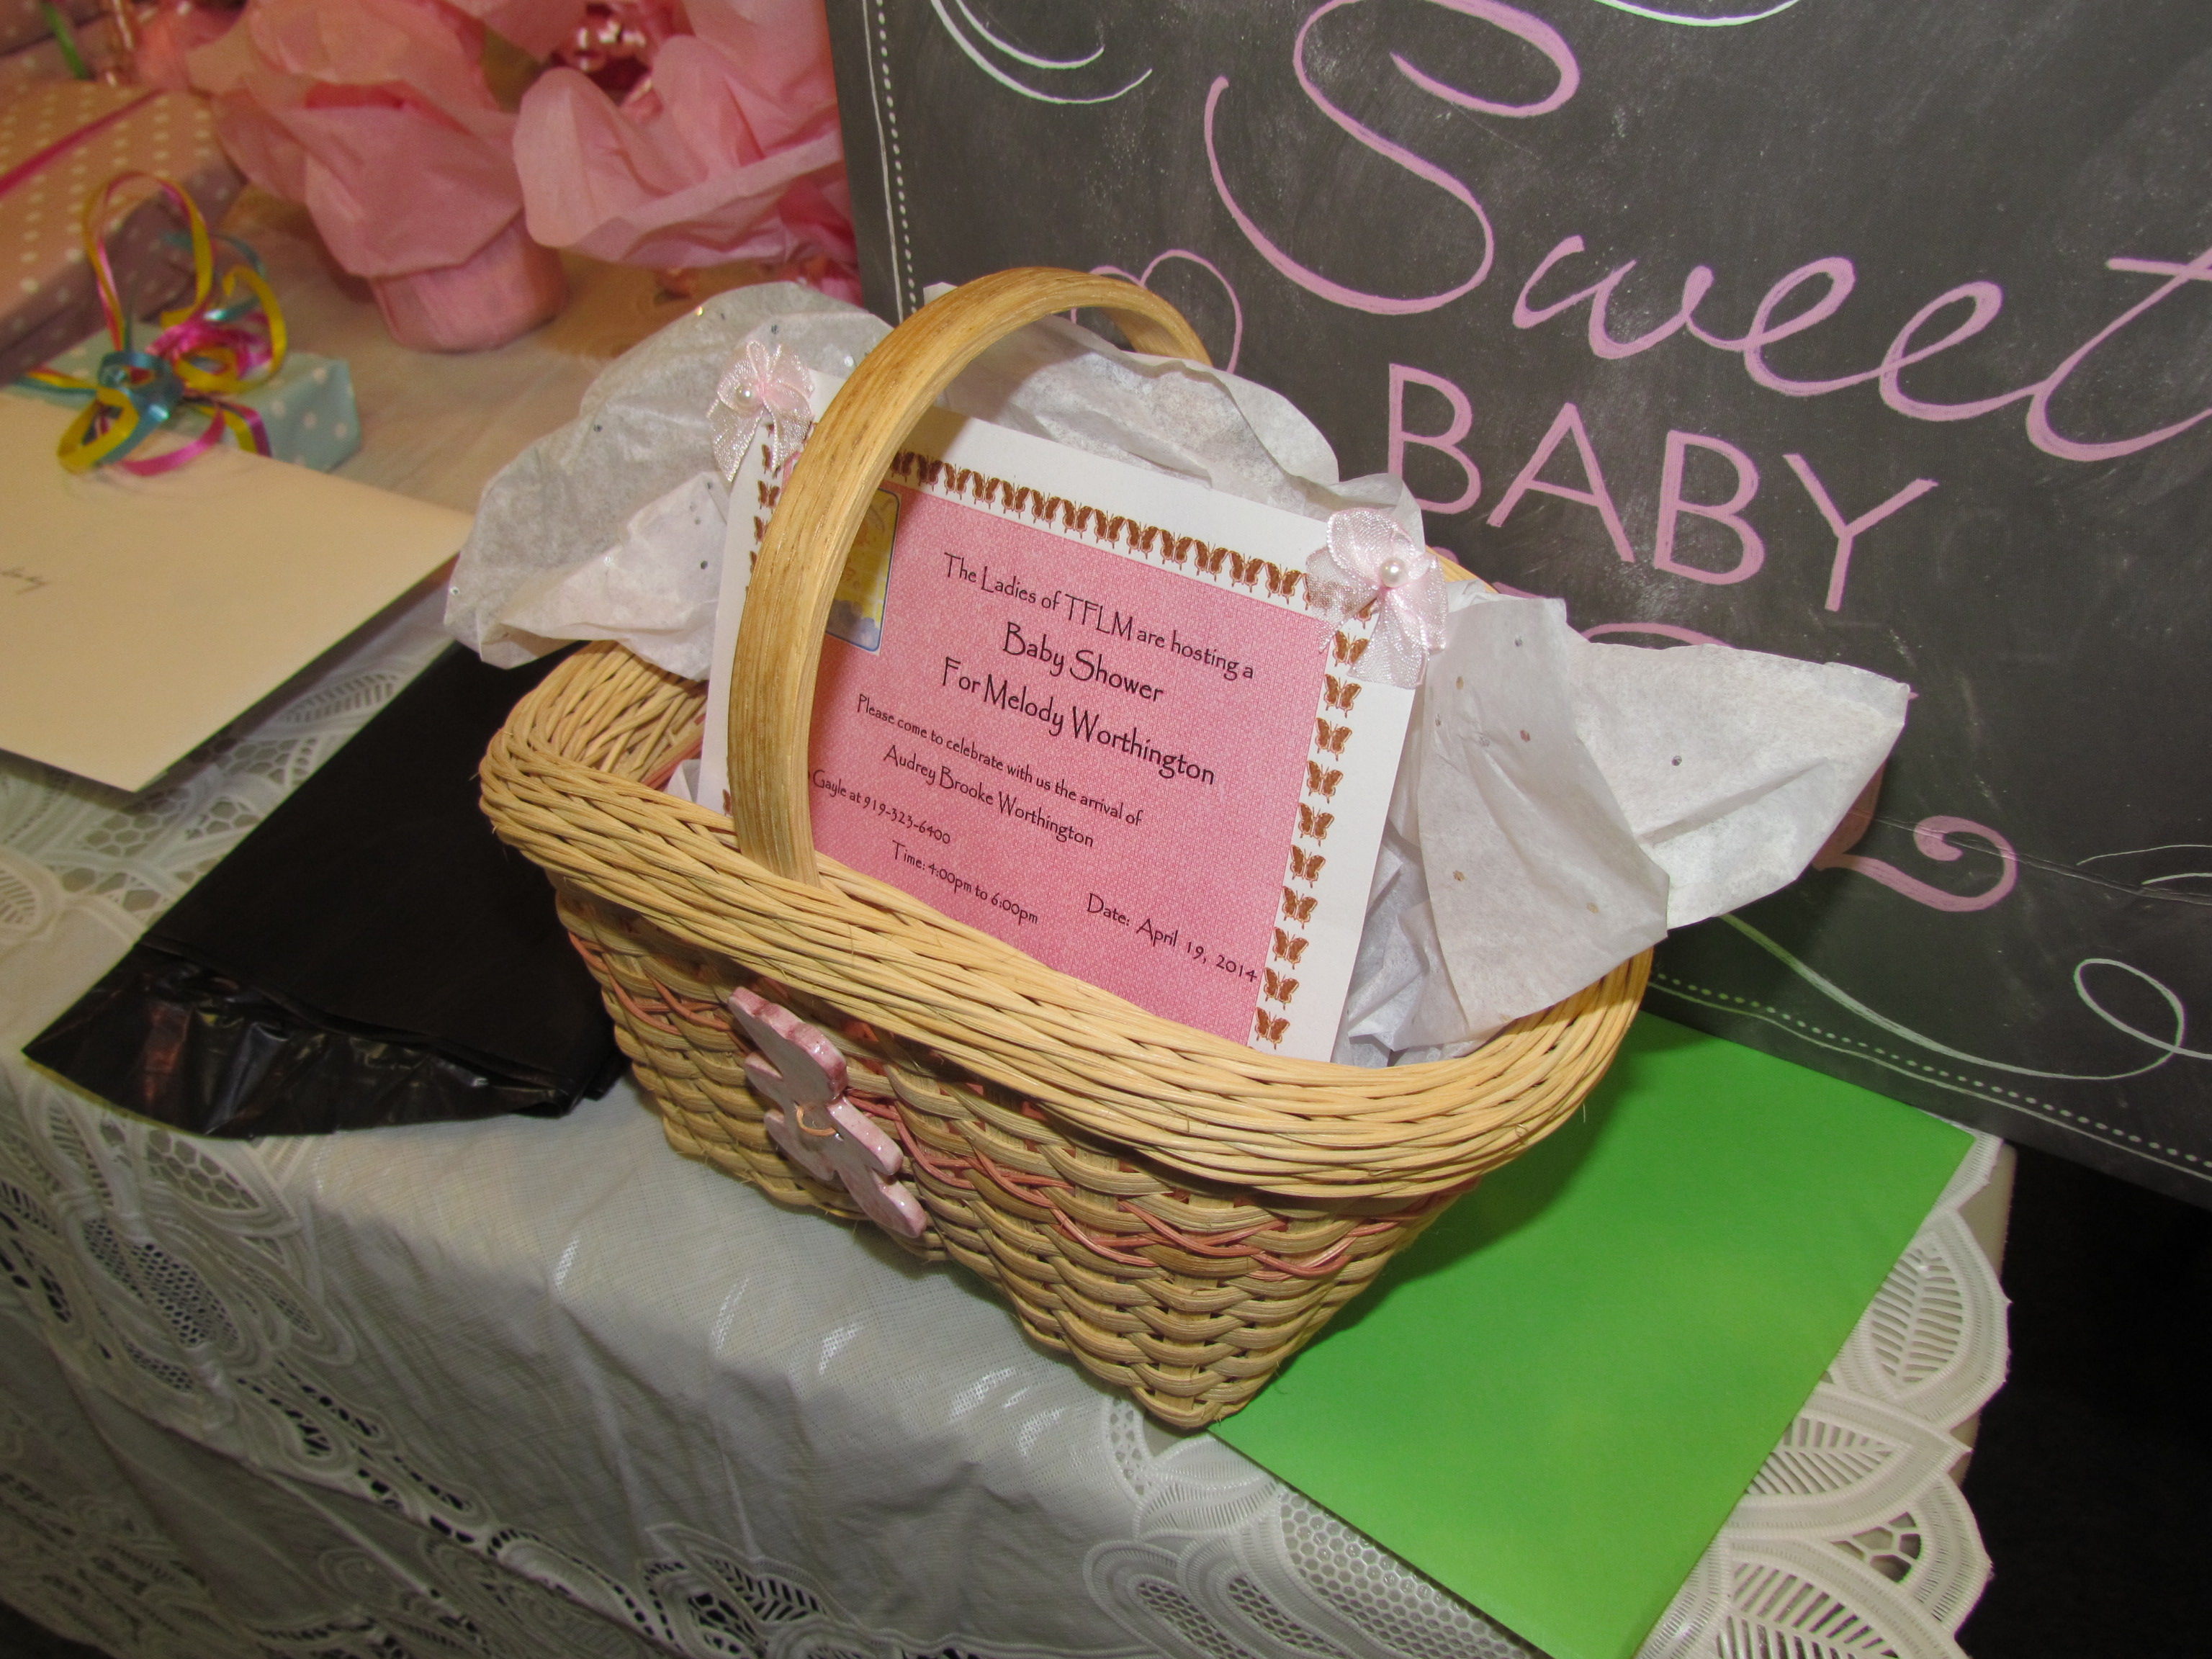 Baby Shower basket close up